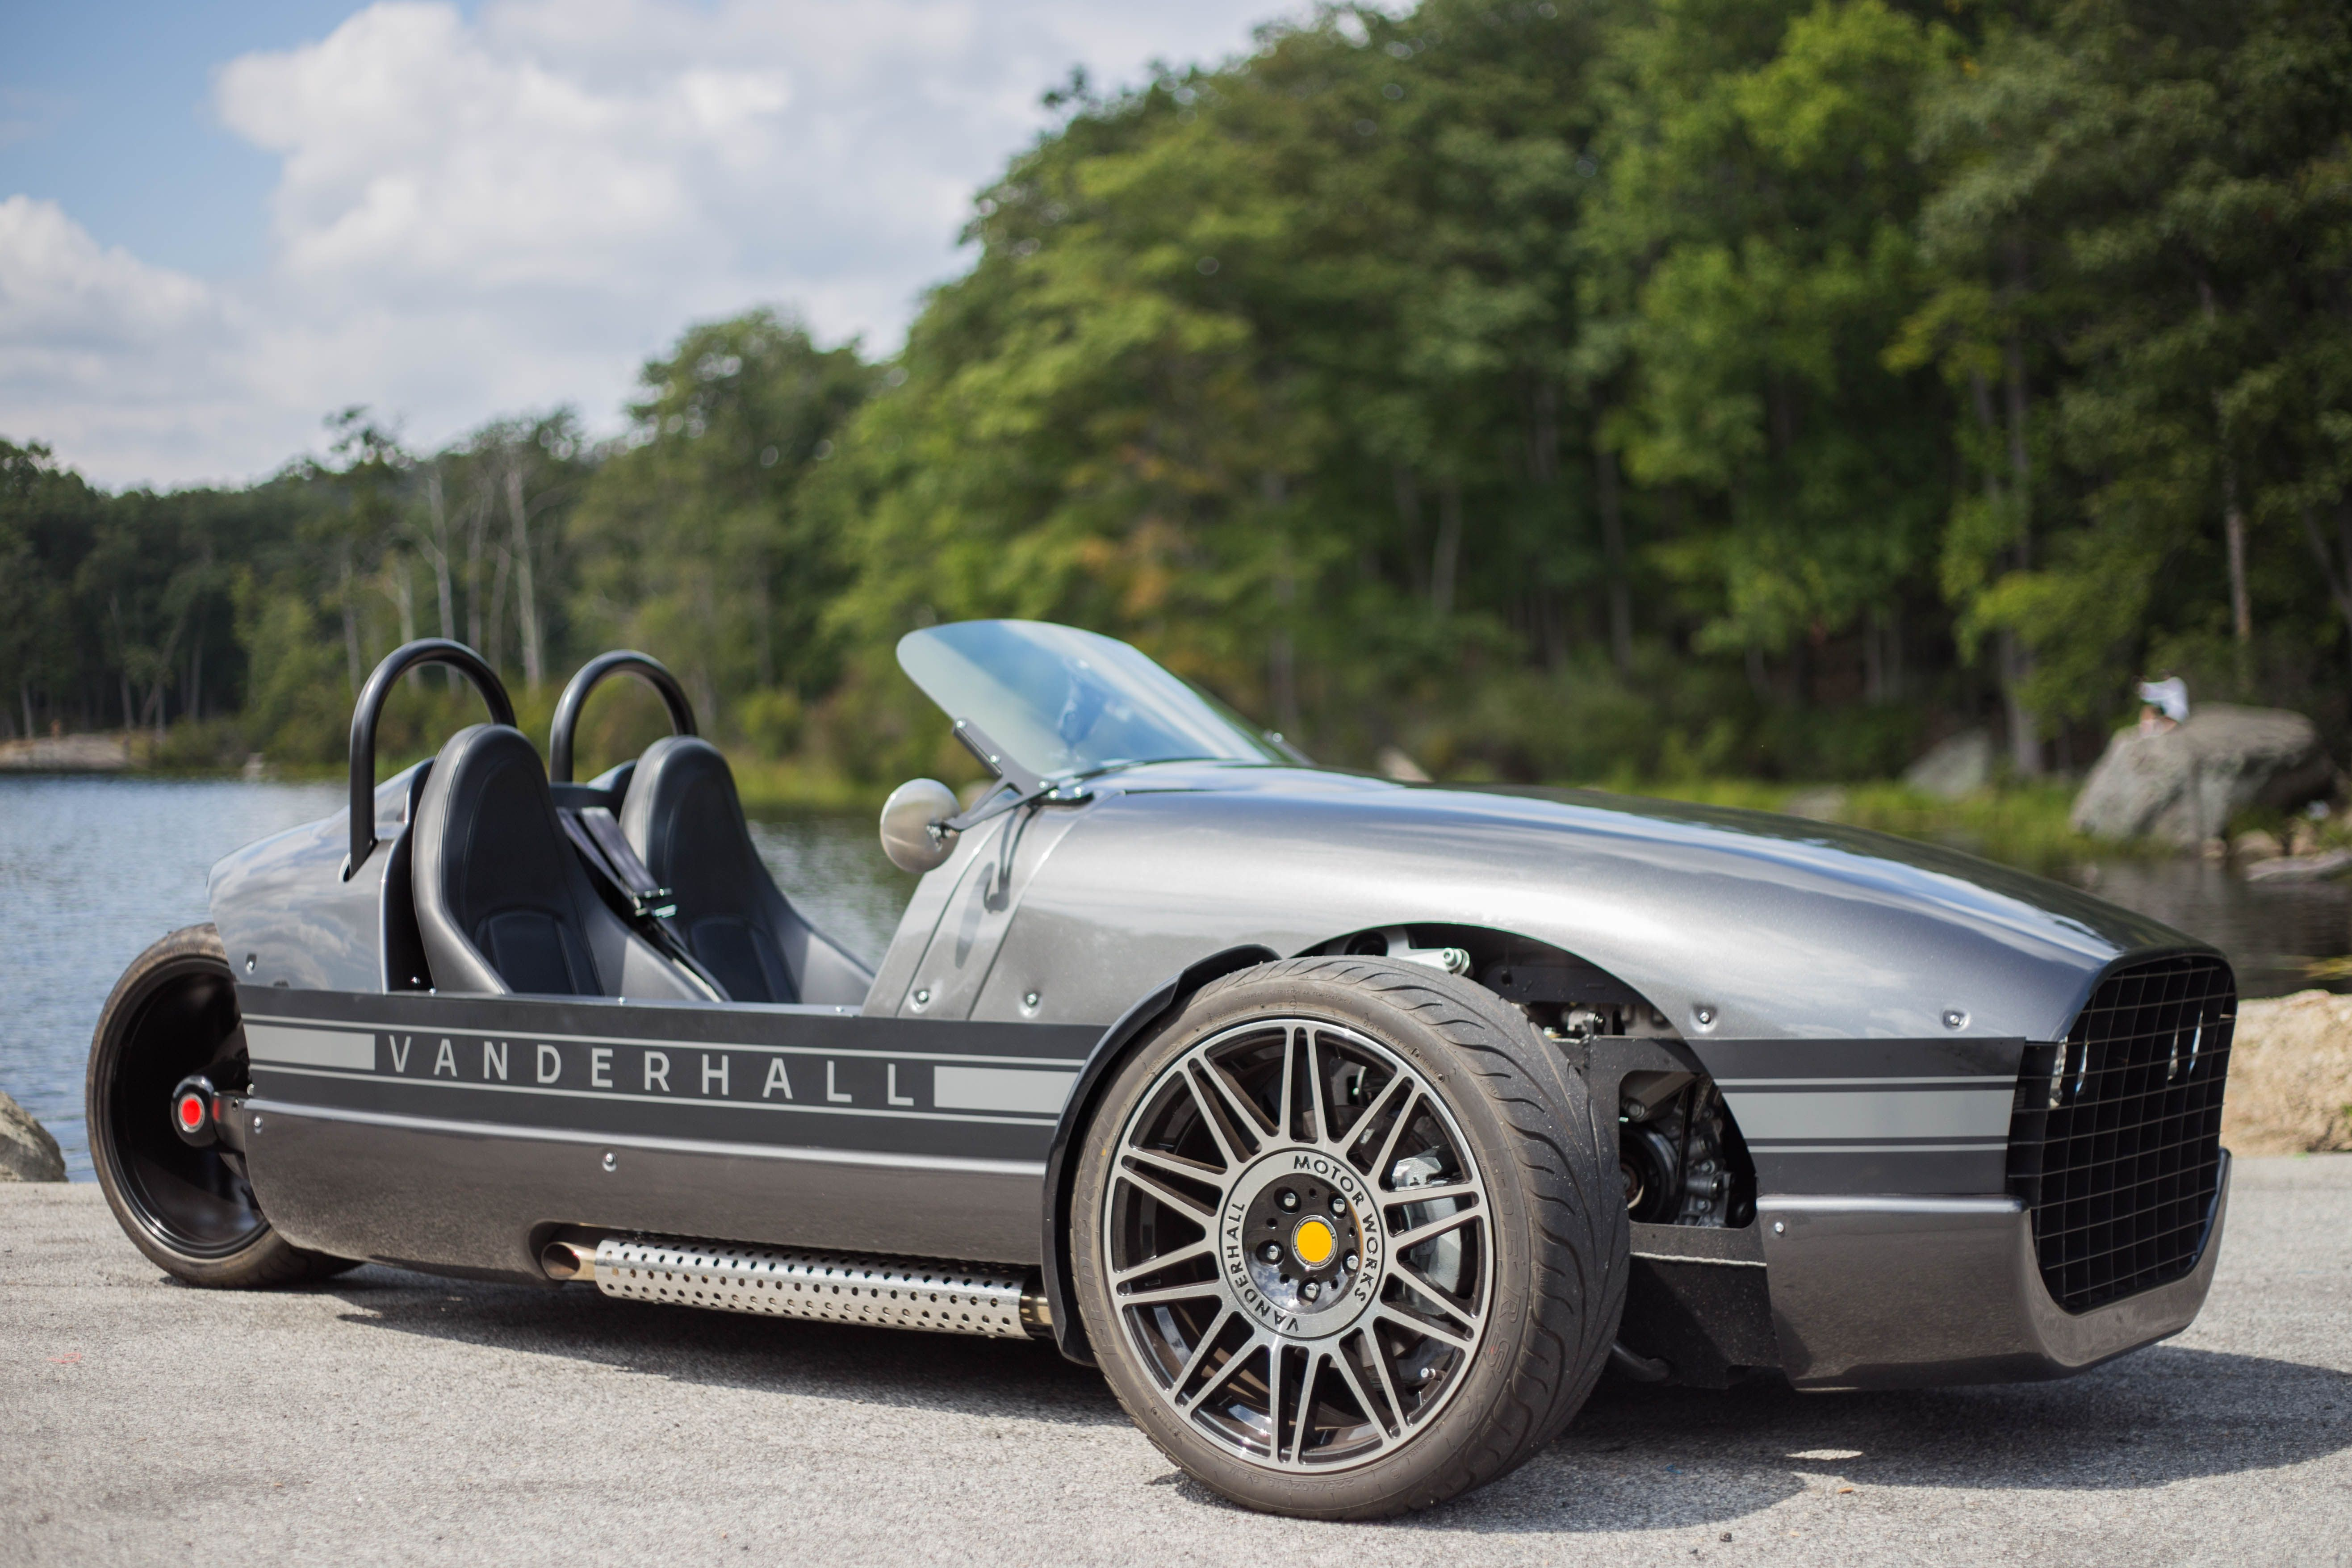 The Vanderhall Venice Gives You Vintage F1 Car And Motorcycle ...